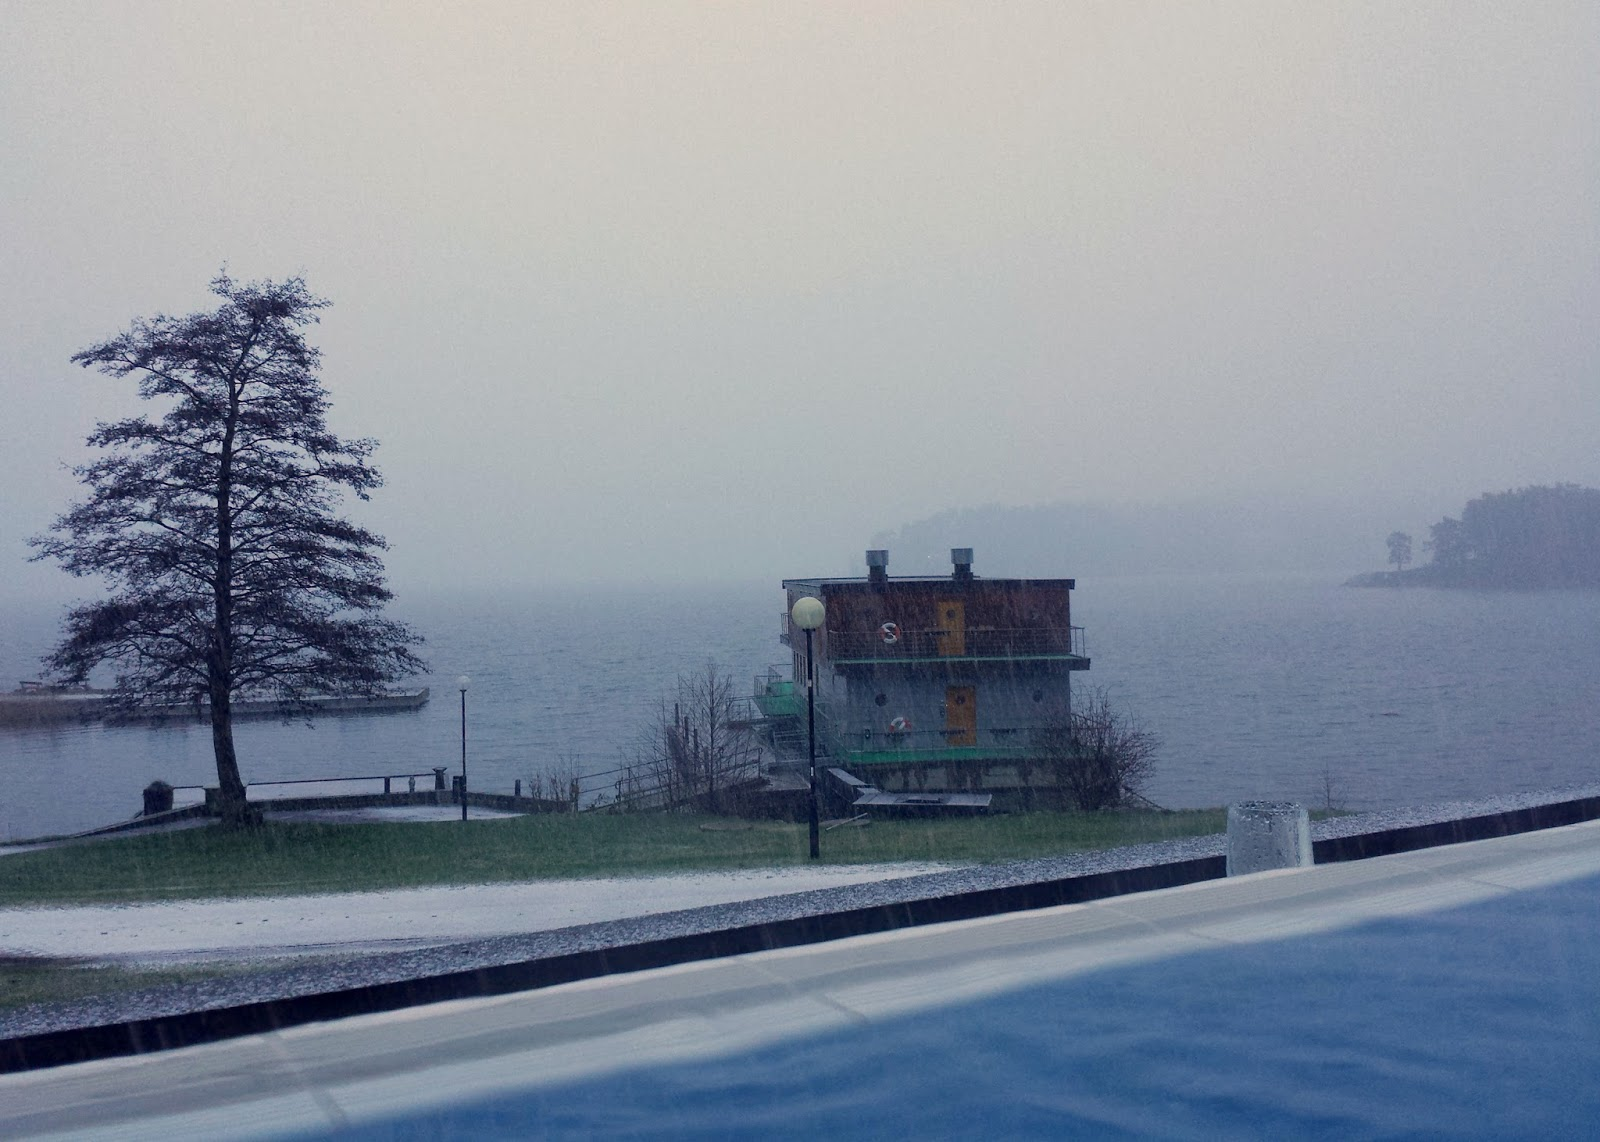 Skepparholmen Spa Hotel outdoor heated pool in Nacka, Stockholm + Swedish sauna customs  |  Swedish sauna rituals and snow flurries by the sea on afeathery*nest  |  http://afeatherynest.com